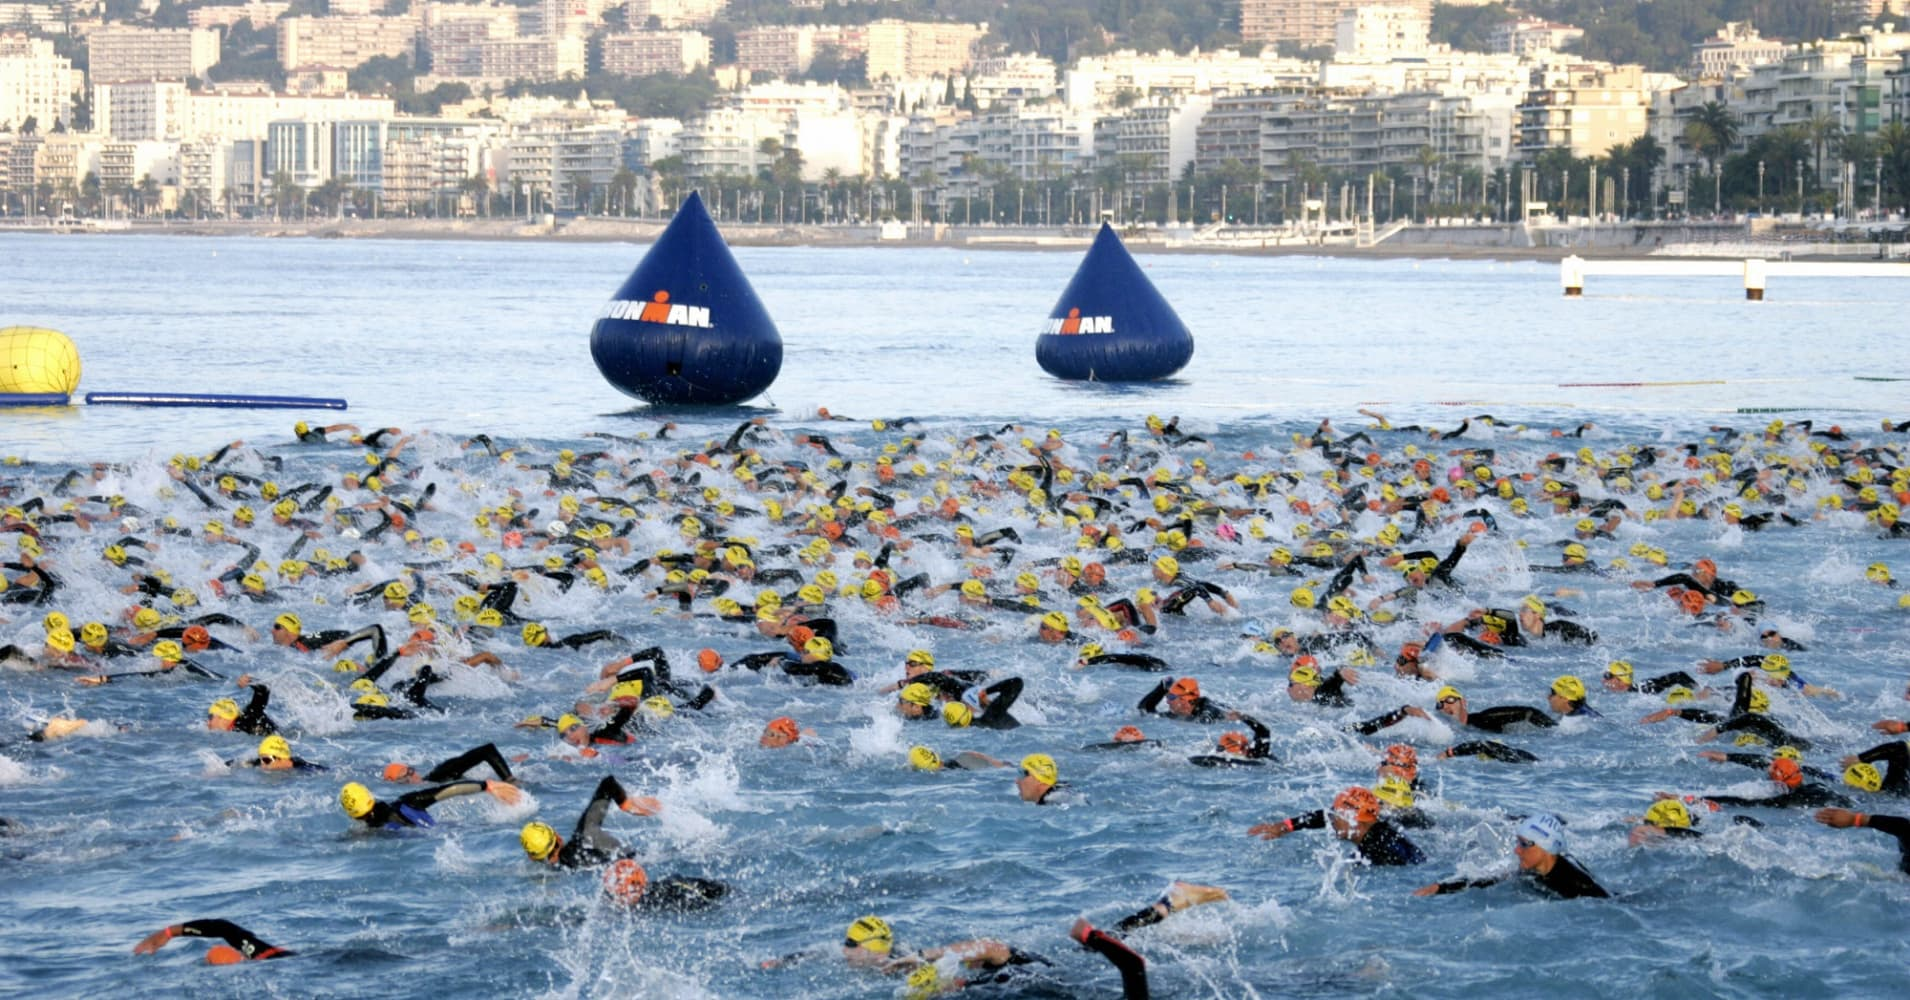 Competitors take the start of the 3rd Ironman France triathlon, 24 June 2007 in Nice, southern France.